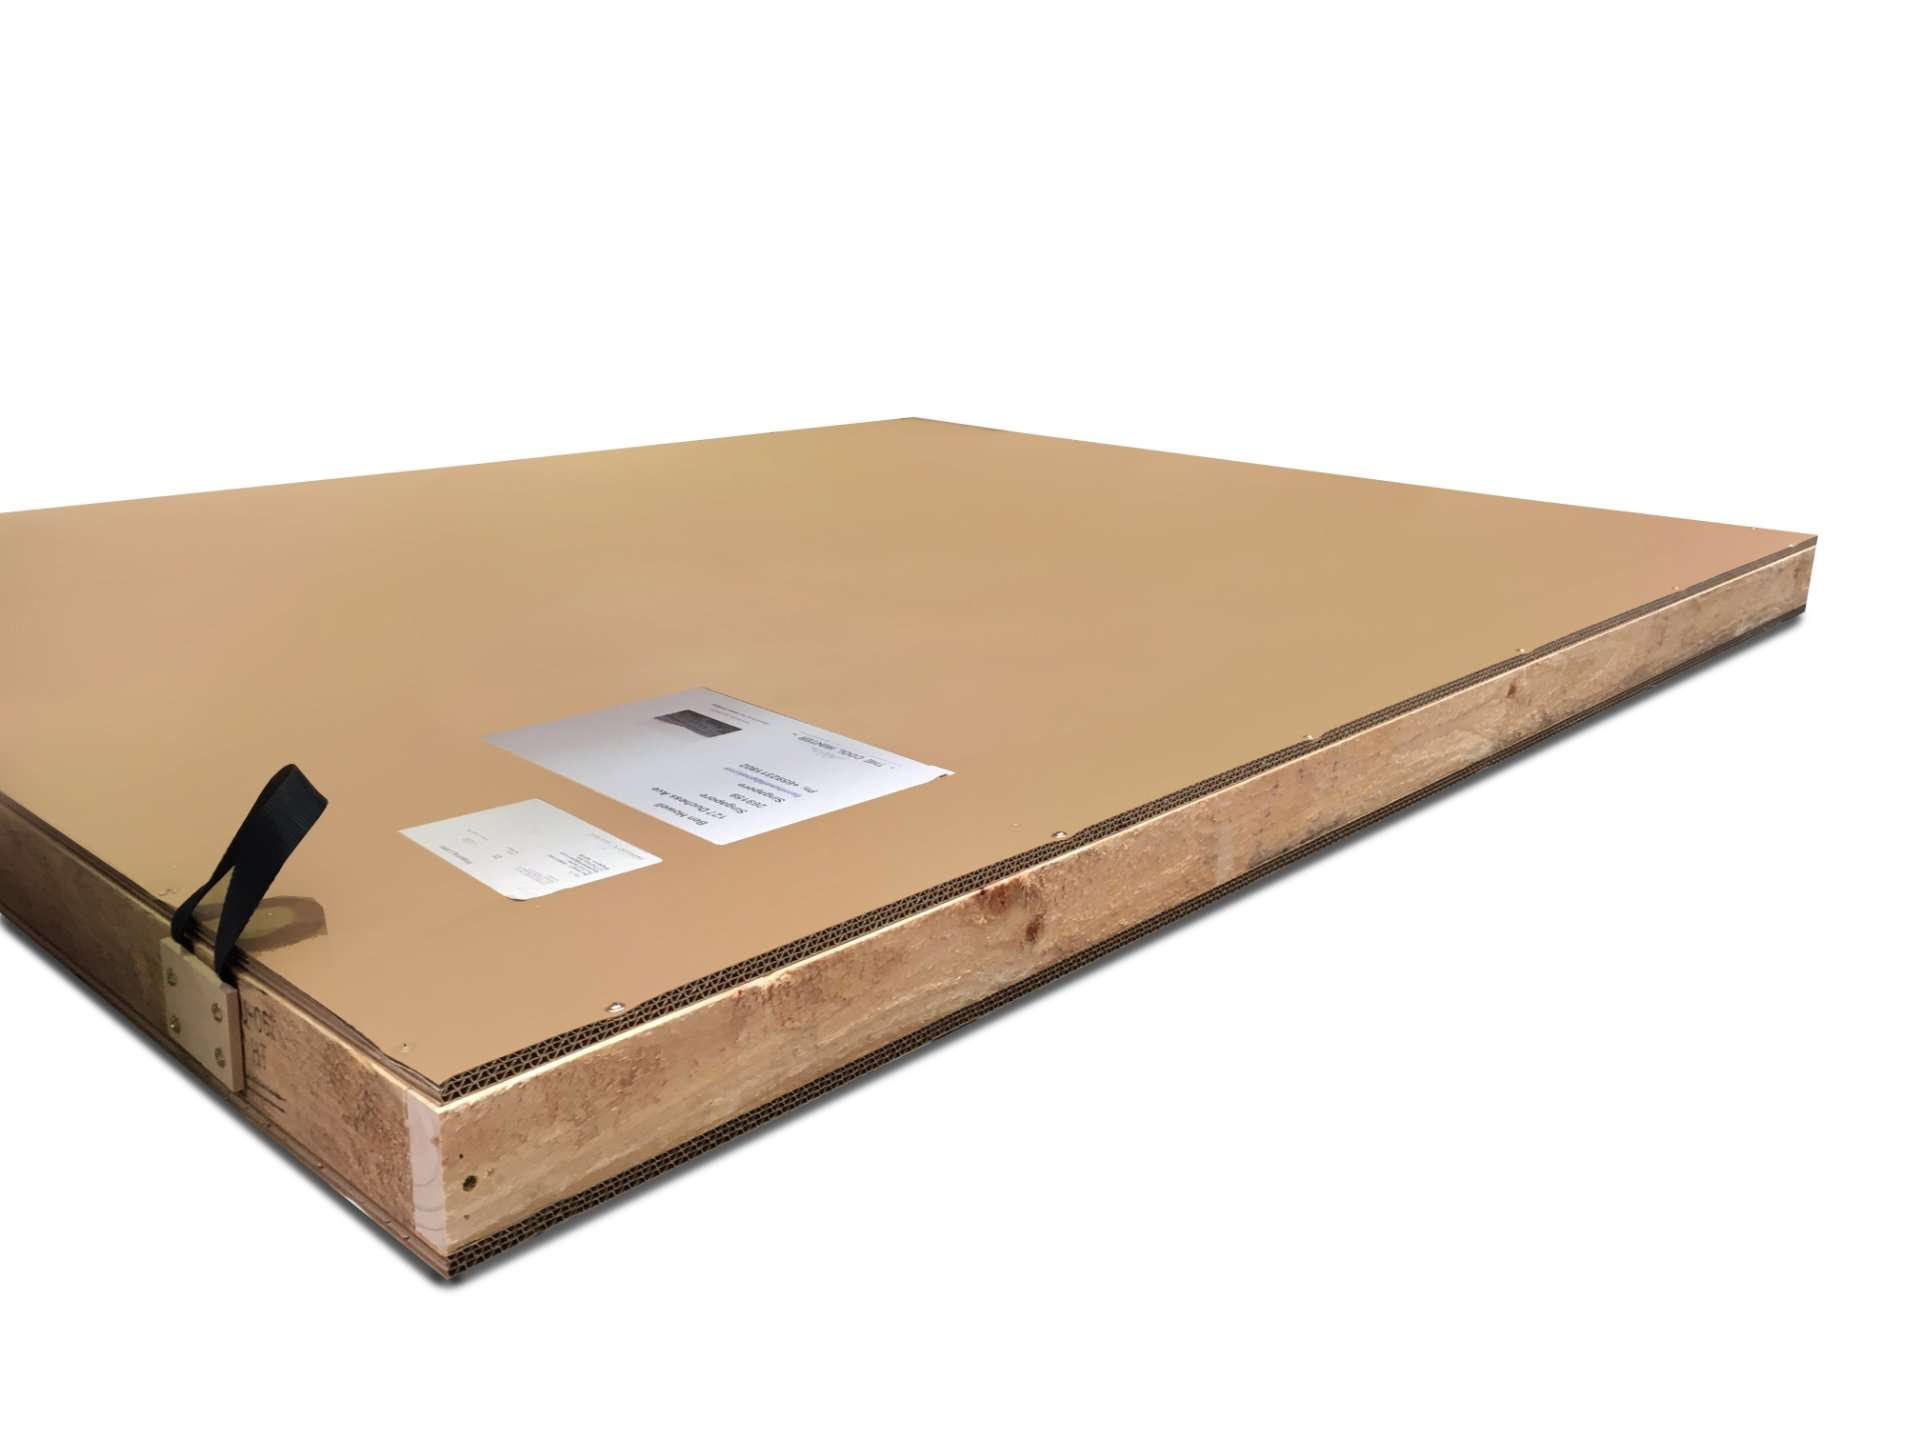 International shipping crate with wooden sides